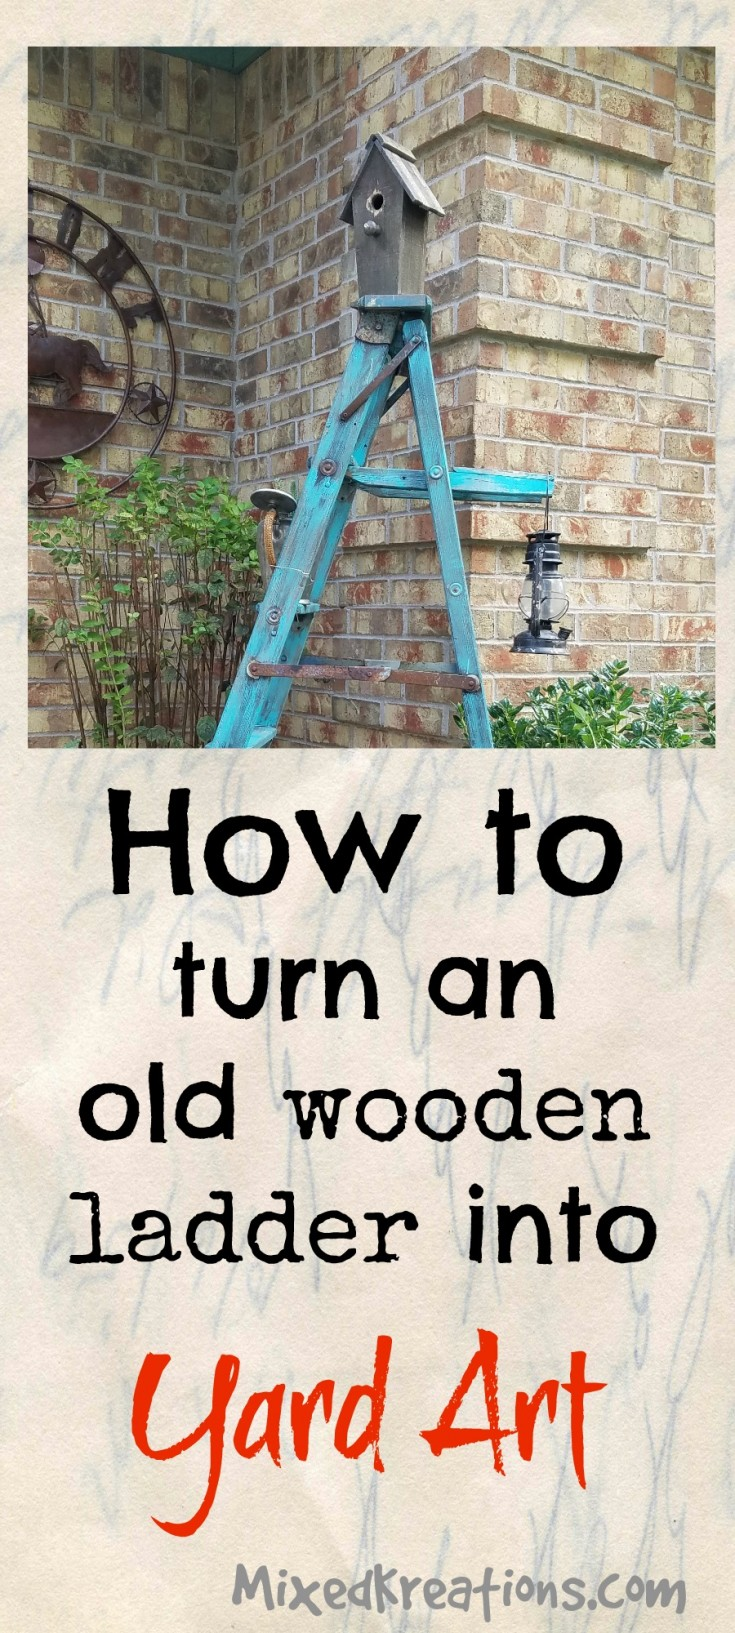 how to turn an old wooden ladder into yard art | outdoor vignette | diy ladder yard art #yardart #vignette #repurposed #upcycled #ladder MixedKreations.com